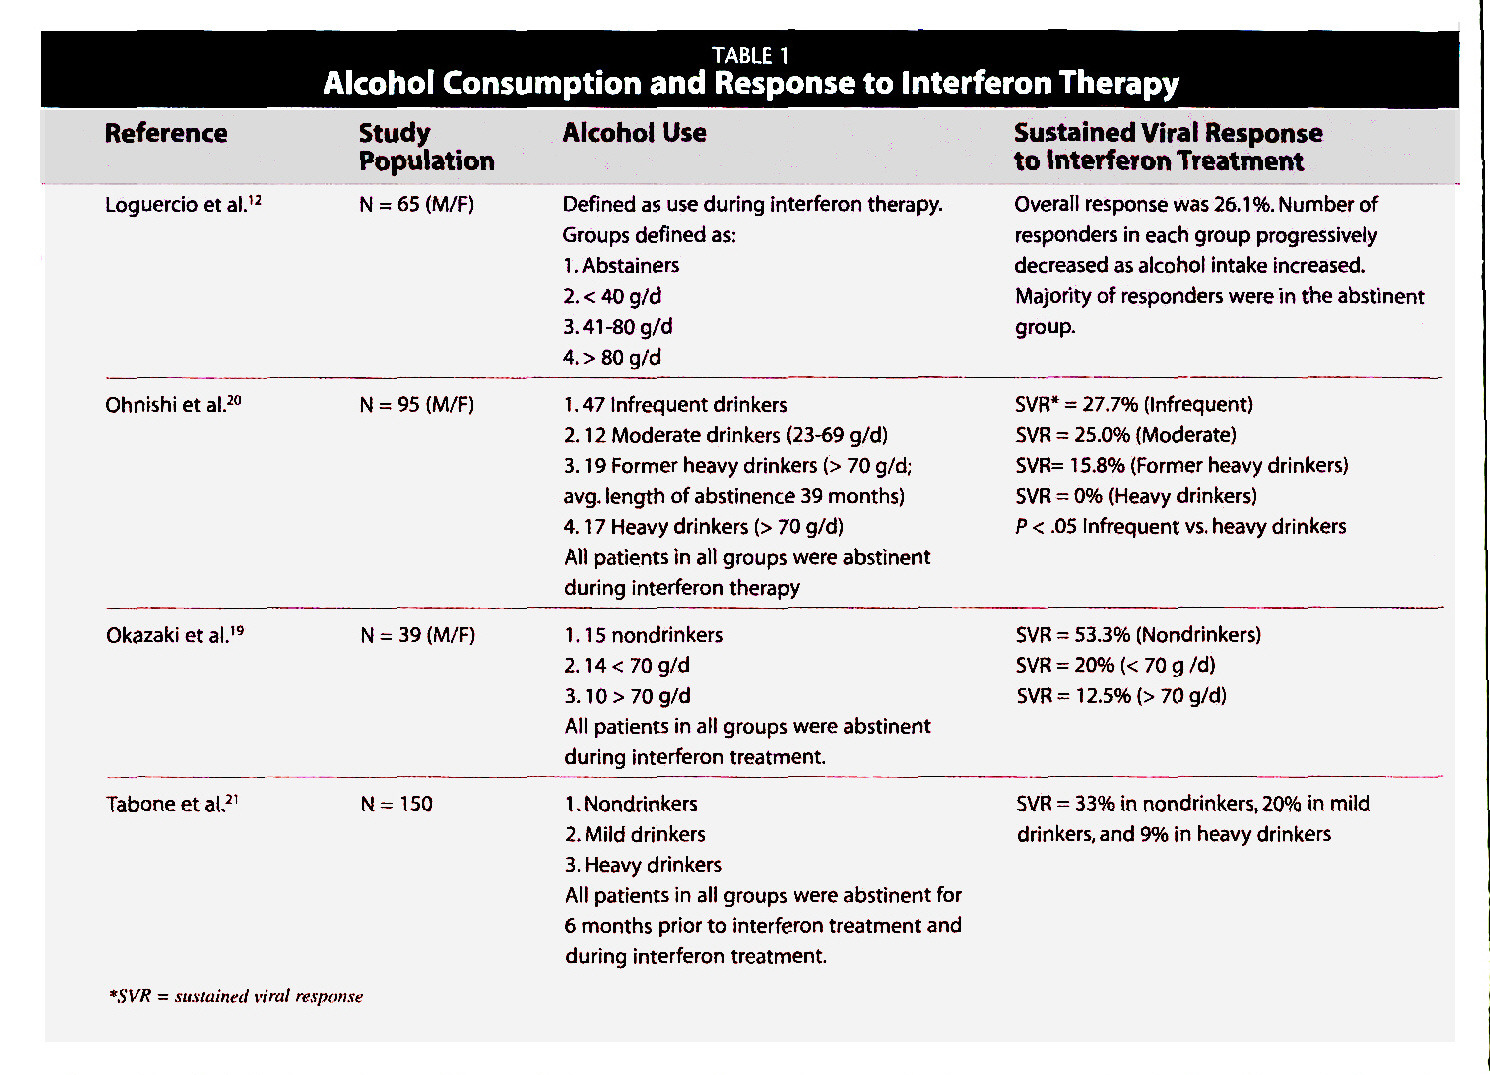 TABLE 1Alcohol Consumption and Response to Interferon Therapy